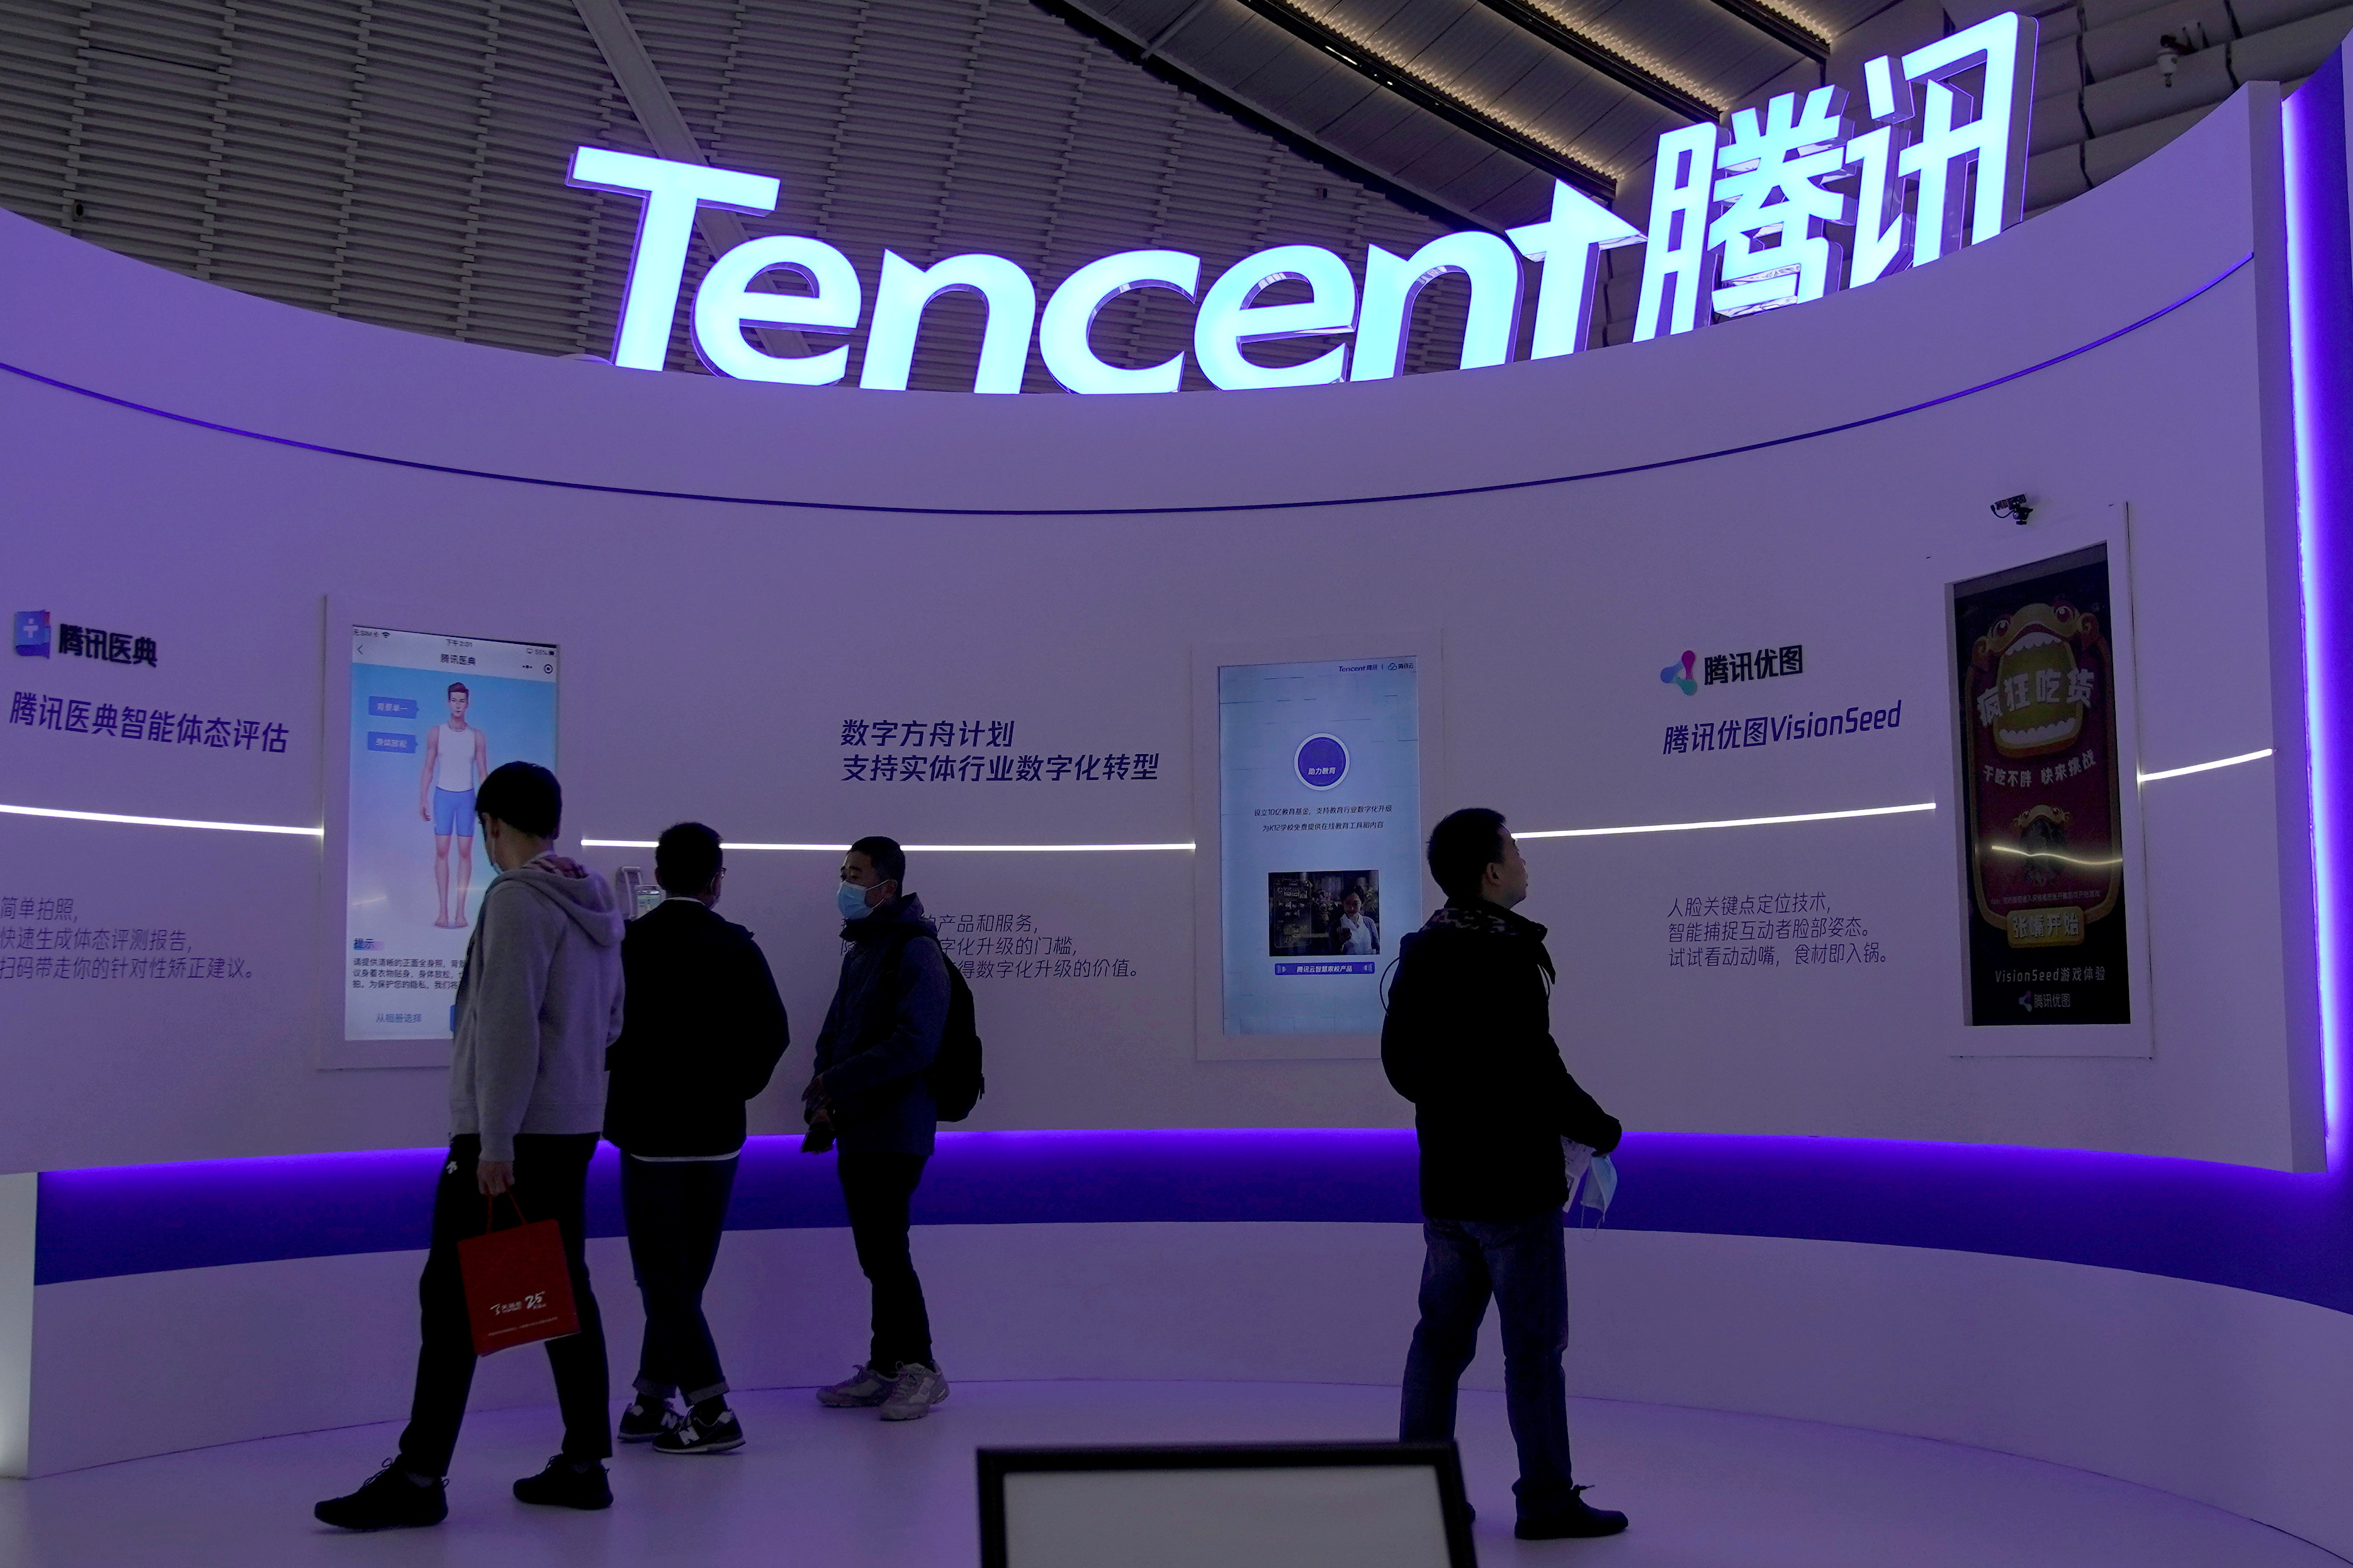 A logo of Tencent is seen during the World Internet Conference (WIC) in Wuzhen, Zhejiang province, China, November 23, 2020. REUTERS/Aly Song/File Photo